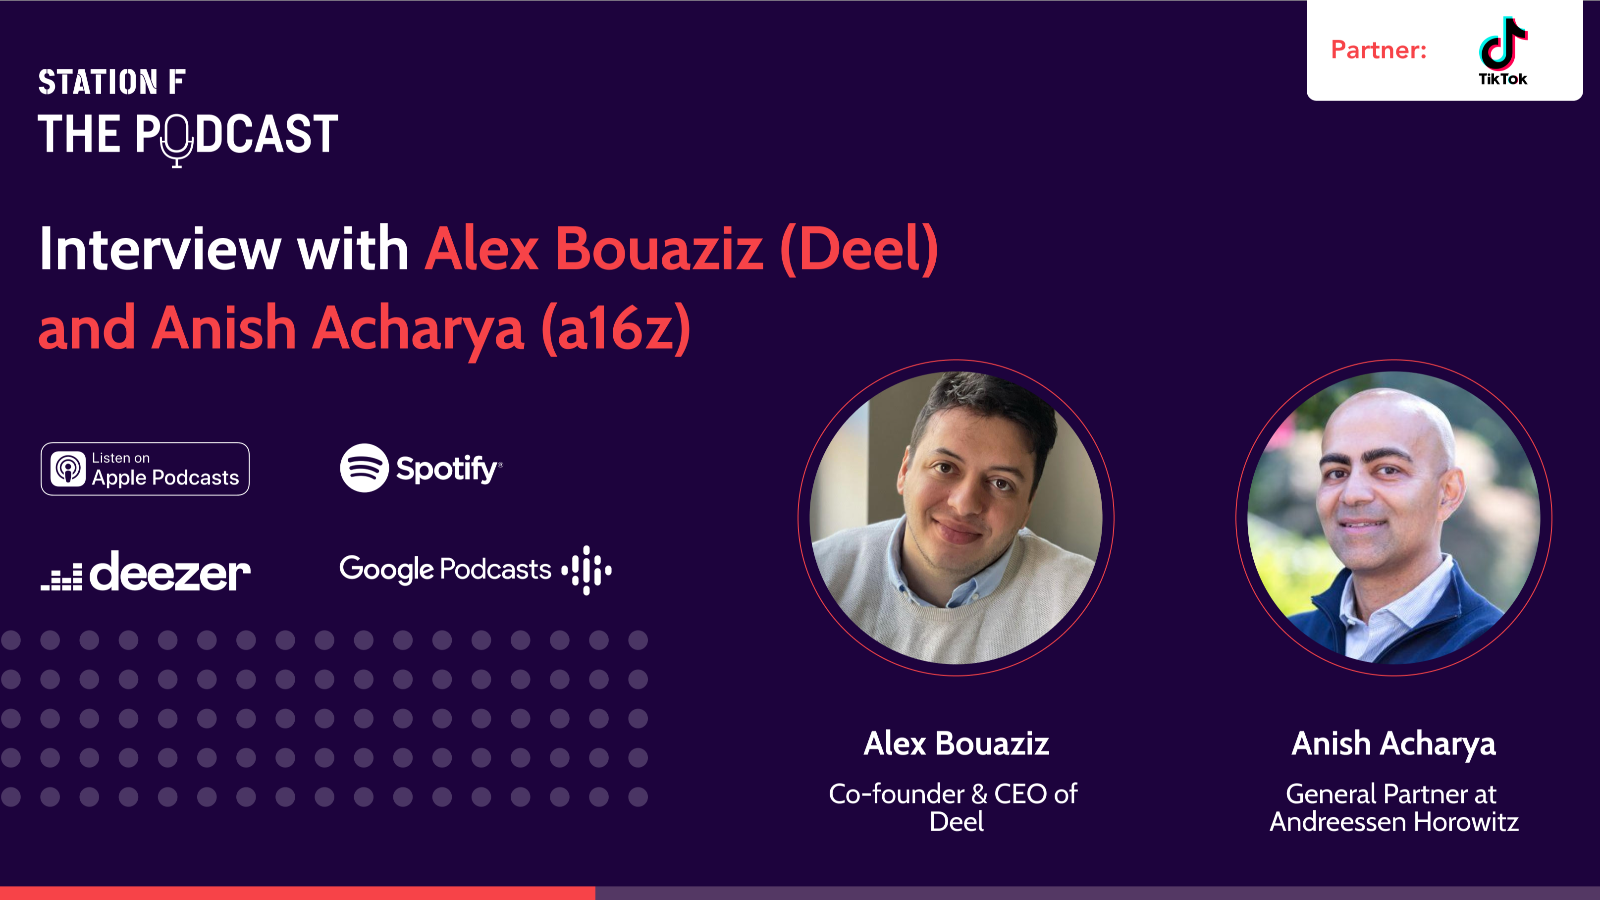 Thumbnail for news article called Interview with Alex Bouaziz (Founder of Deel) and Anish Acharya (General Partner at a16z)